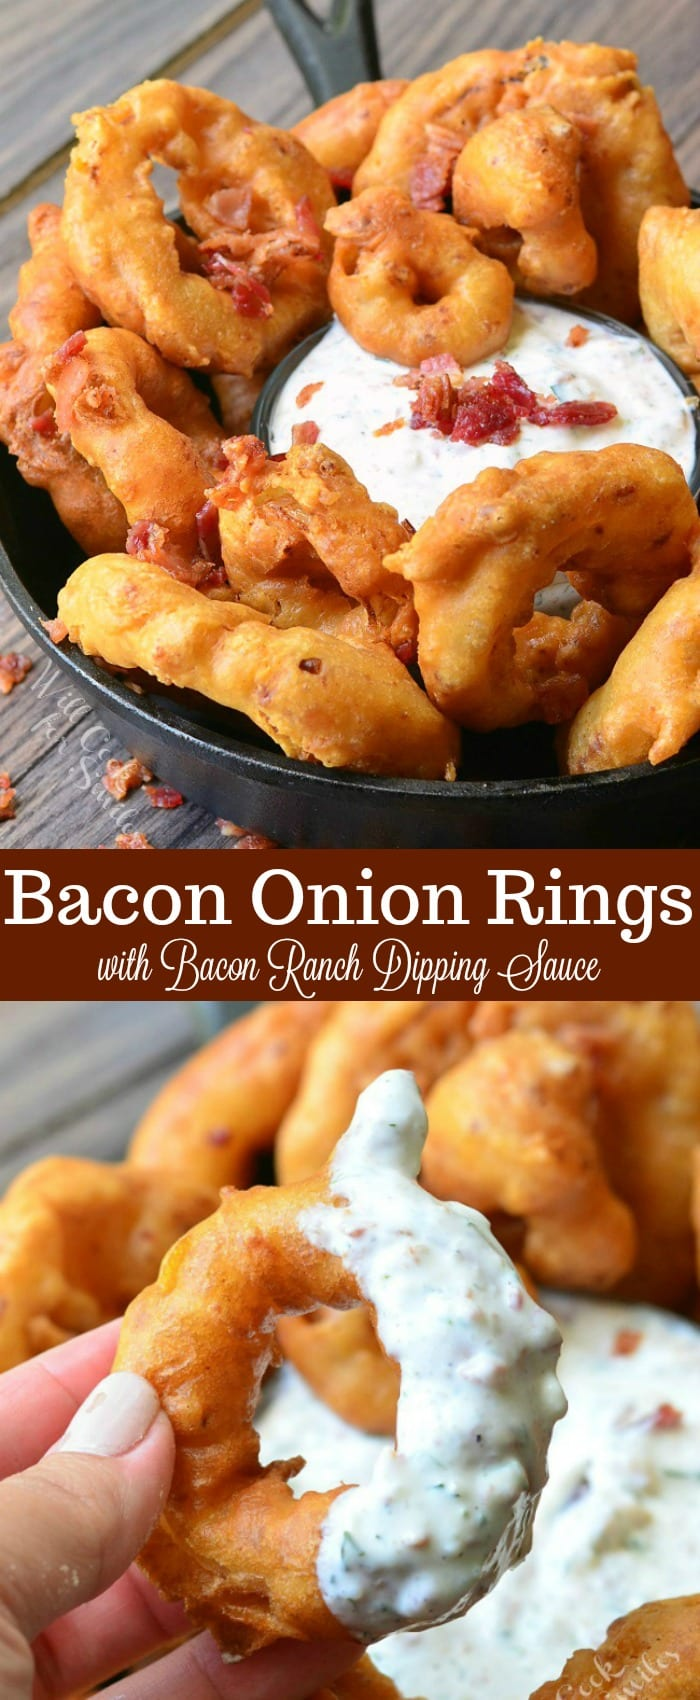 Two photos: Top photo is of Bacon Onion Rings that are served in a black skillet around a dish of Bacon Ranch Dipping Sauce. Bacon is used to garnish the top of the dip. Bottom photo is of a hand holding an onion ring that has been half dipped into the bacon ranch dipping sauce.